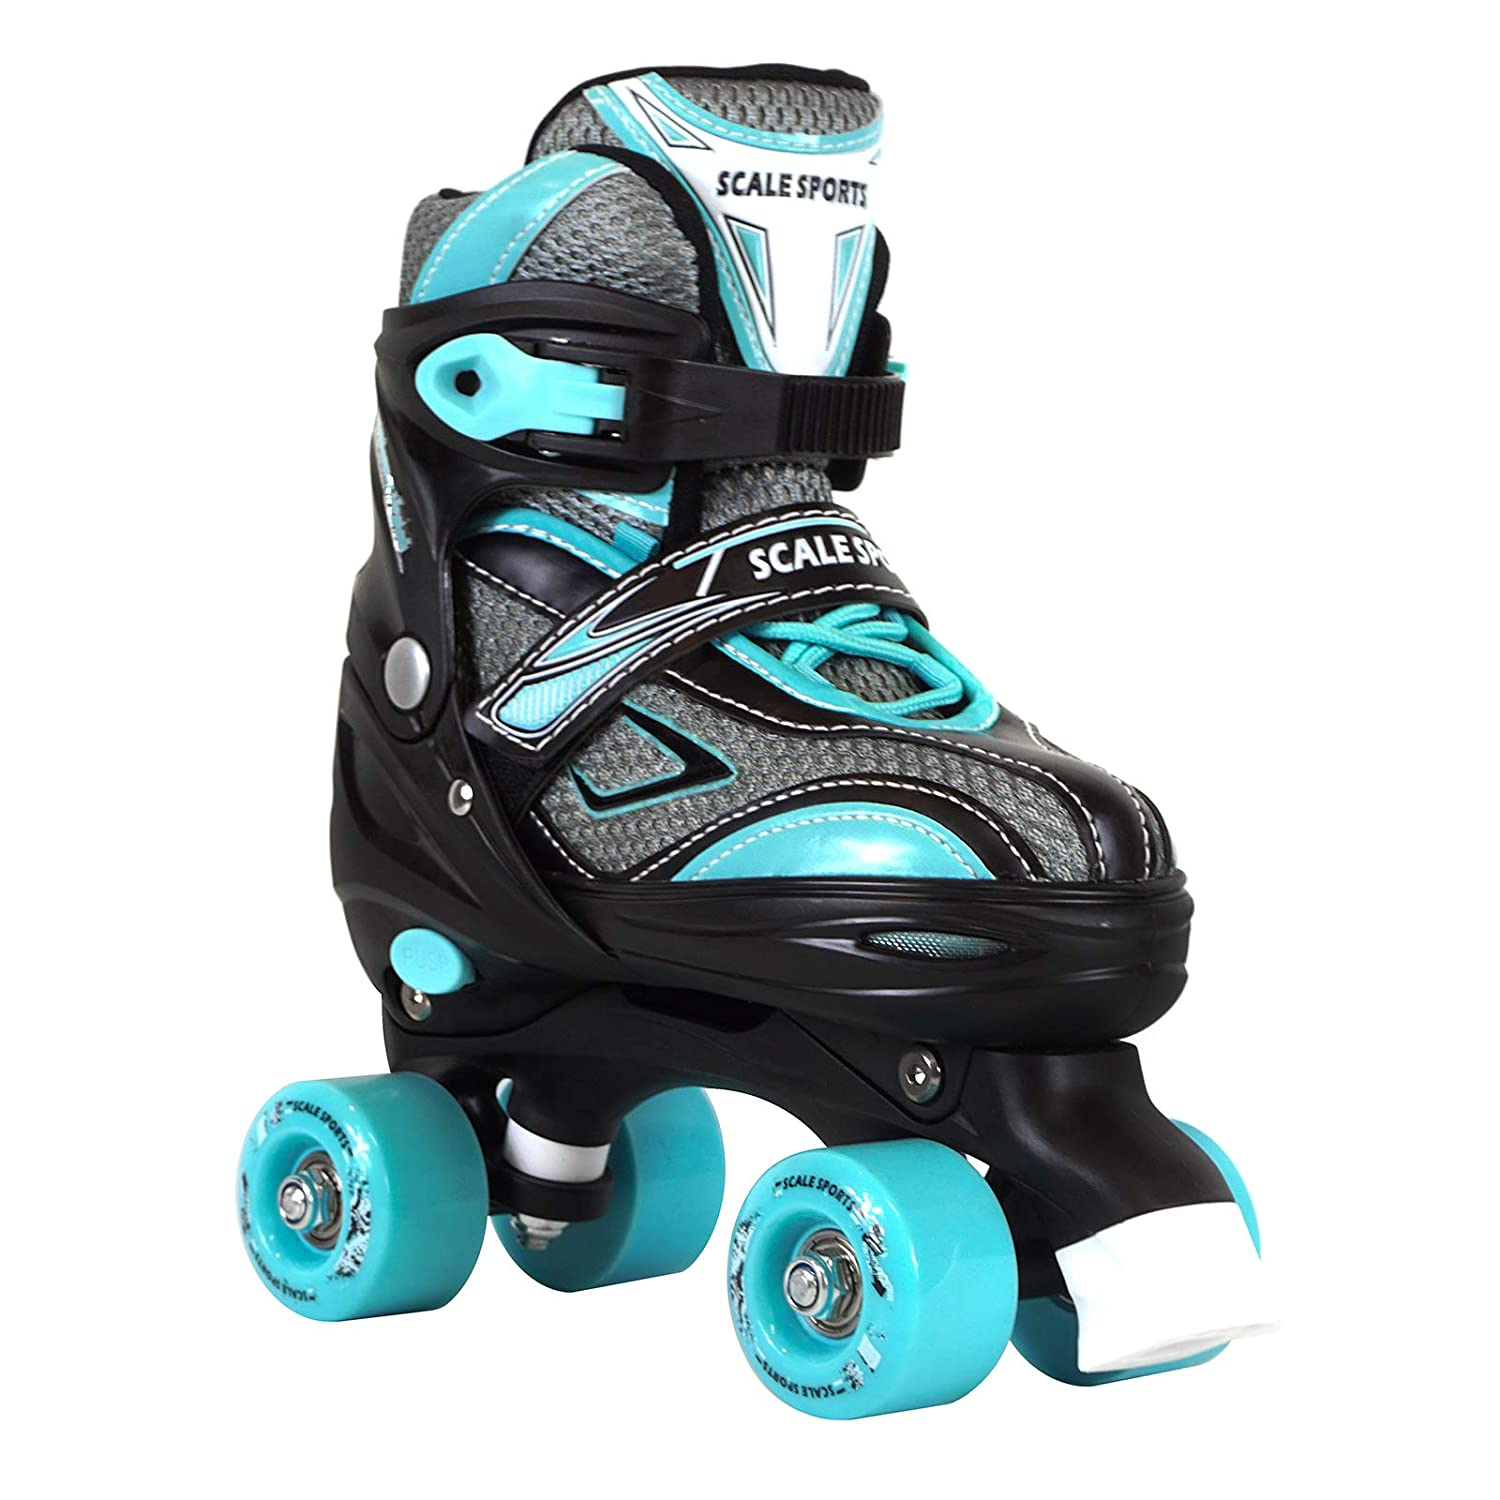 Scale Sports Adjustable Roller Skates for Kids Teen and Ladies